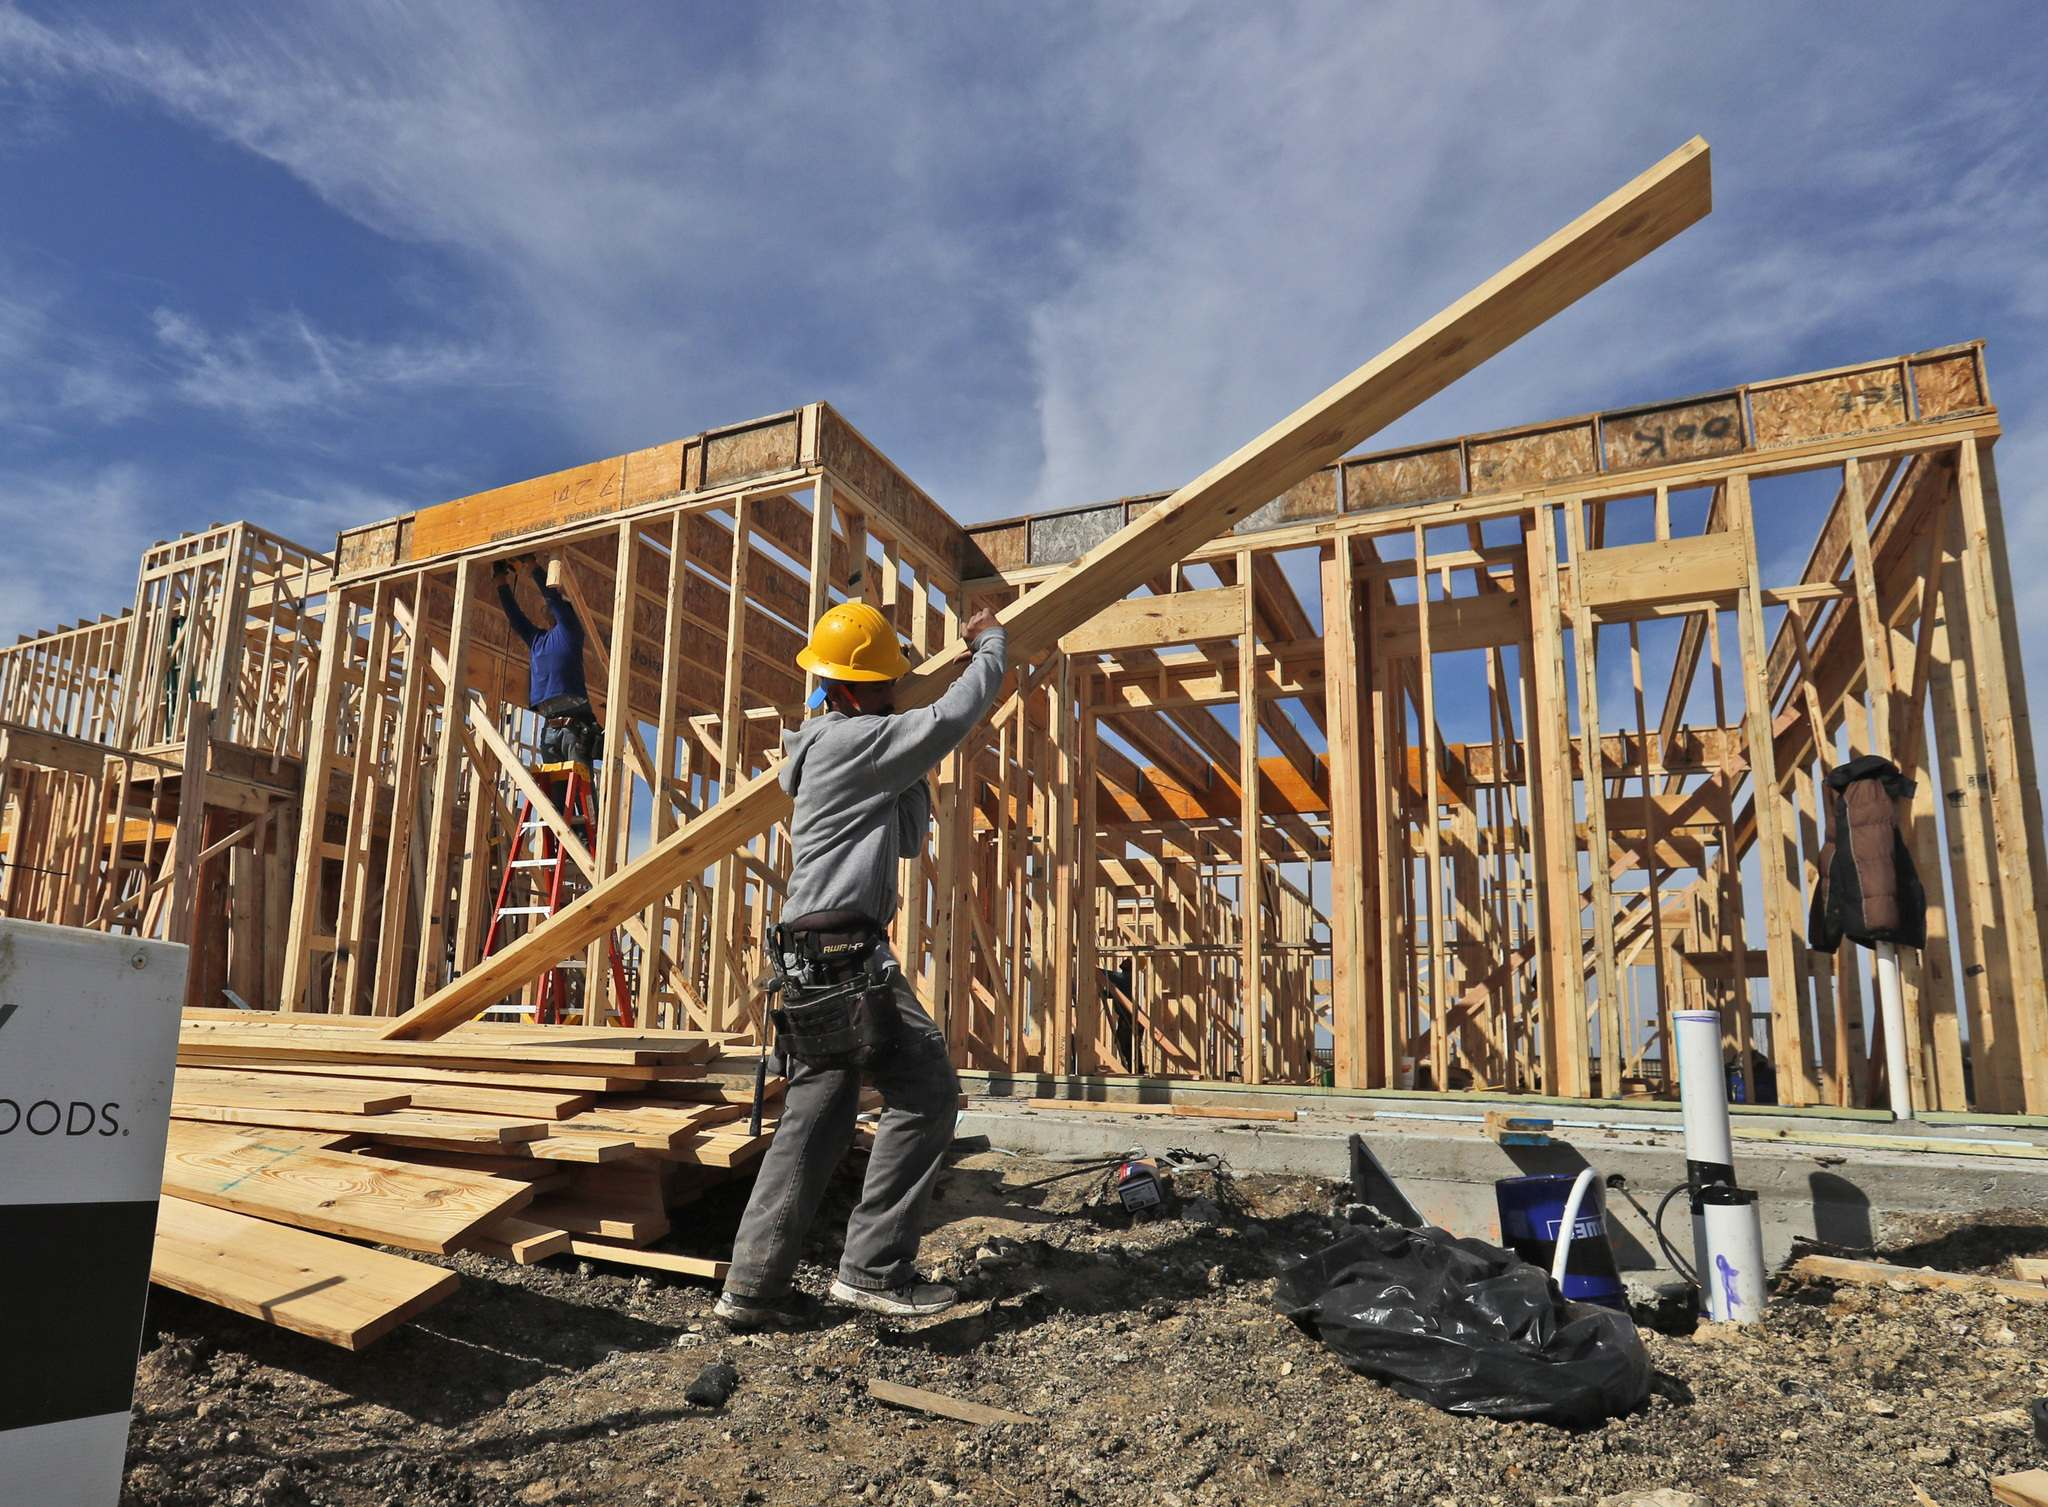 THE ASSOCIATED PRESS FILES</p><p>Chairman of the city's property and development committee feels a new report seems to have unfairly targeted the homebuilding industry, when the complaints have involved mostly commercial property developers and the occasional infill housing builder.</p>